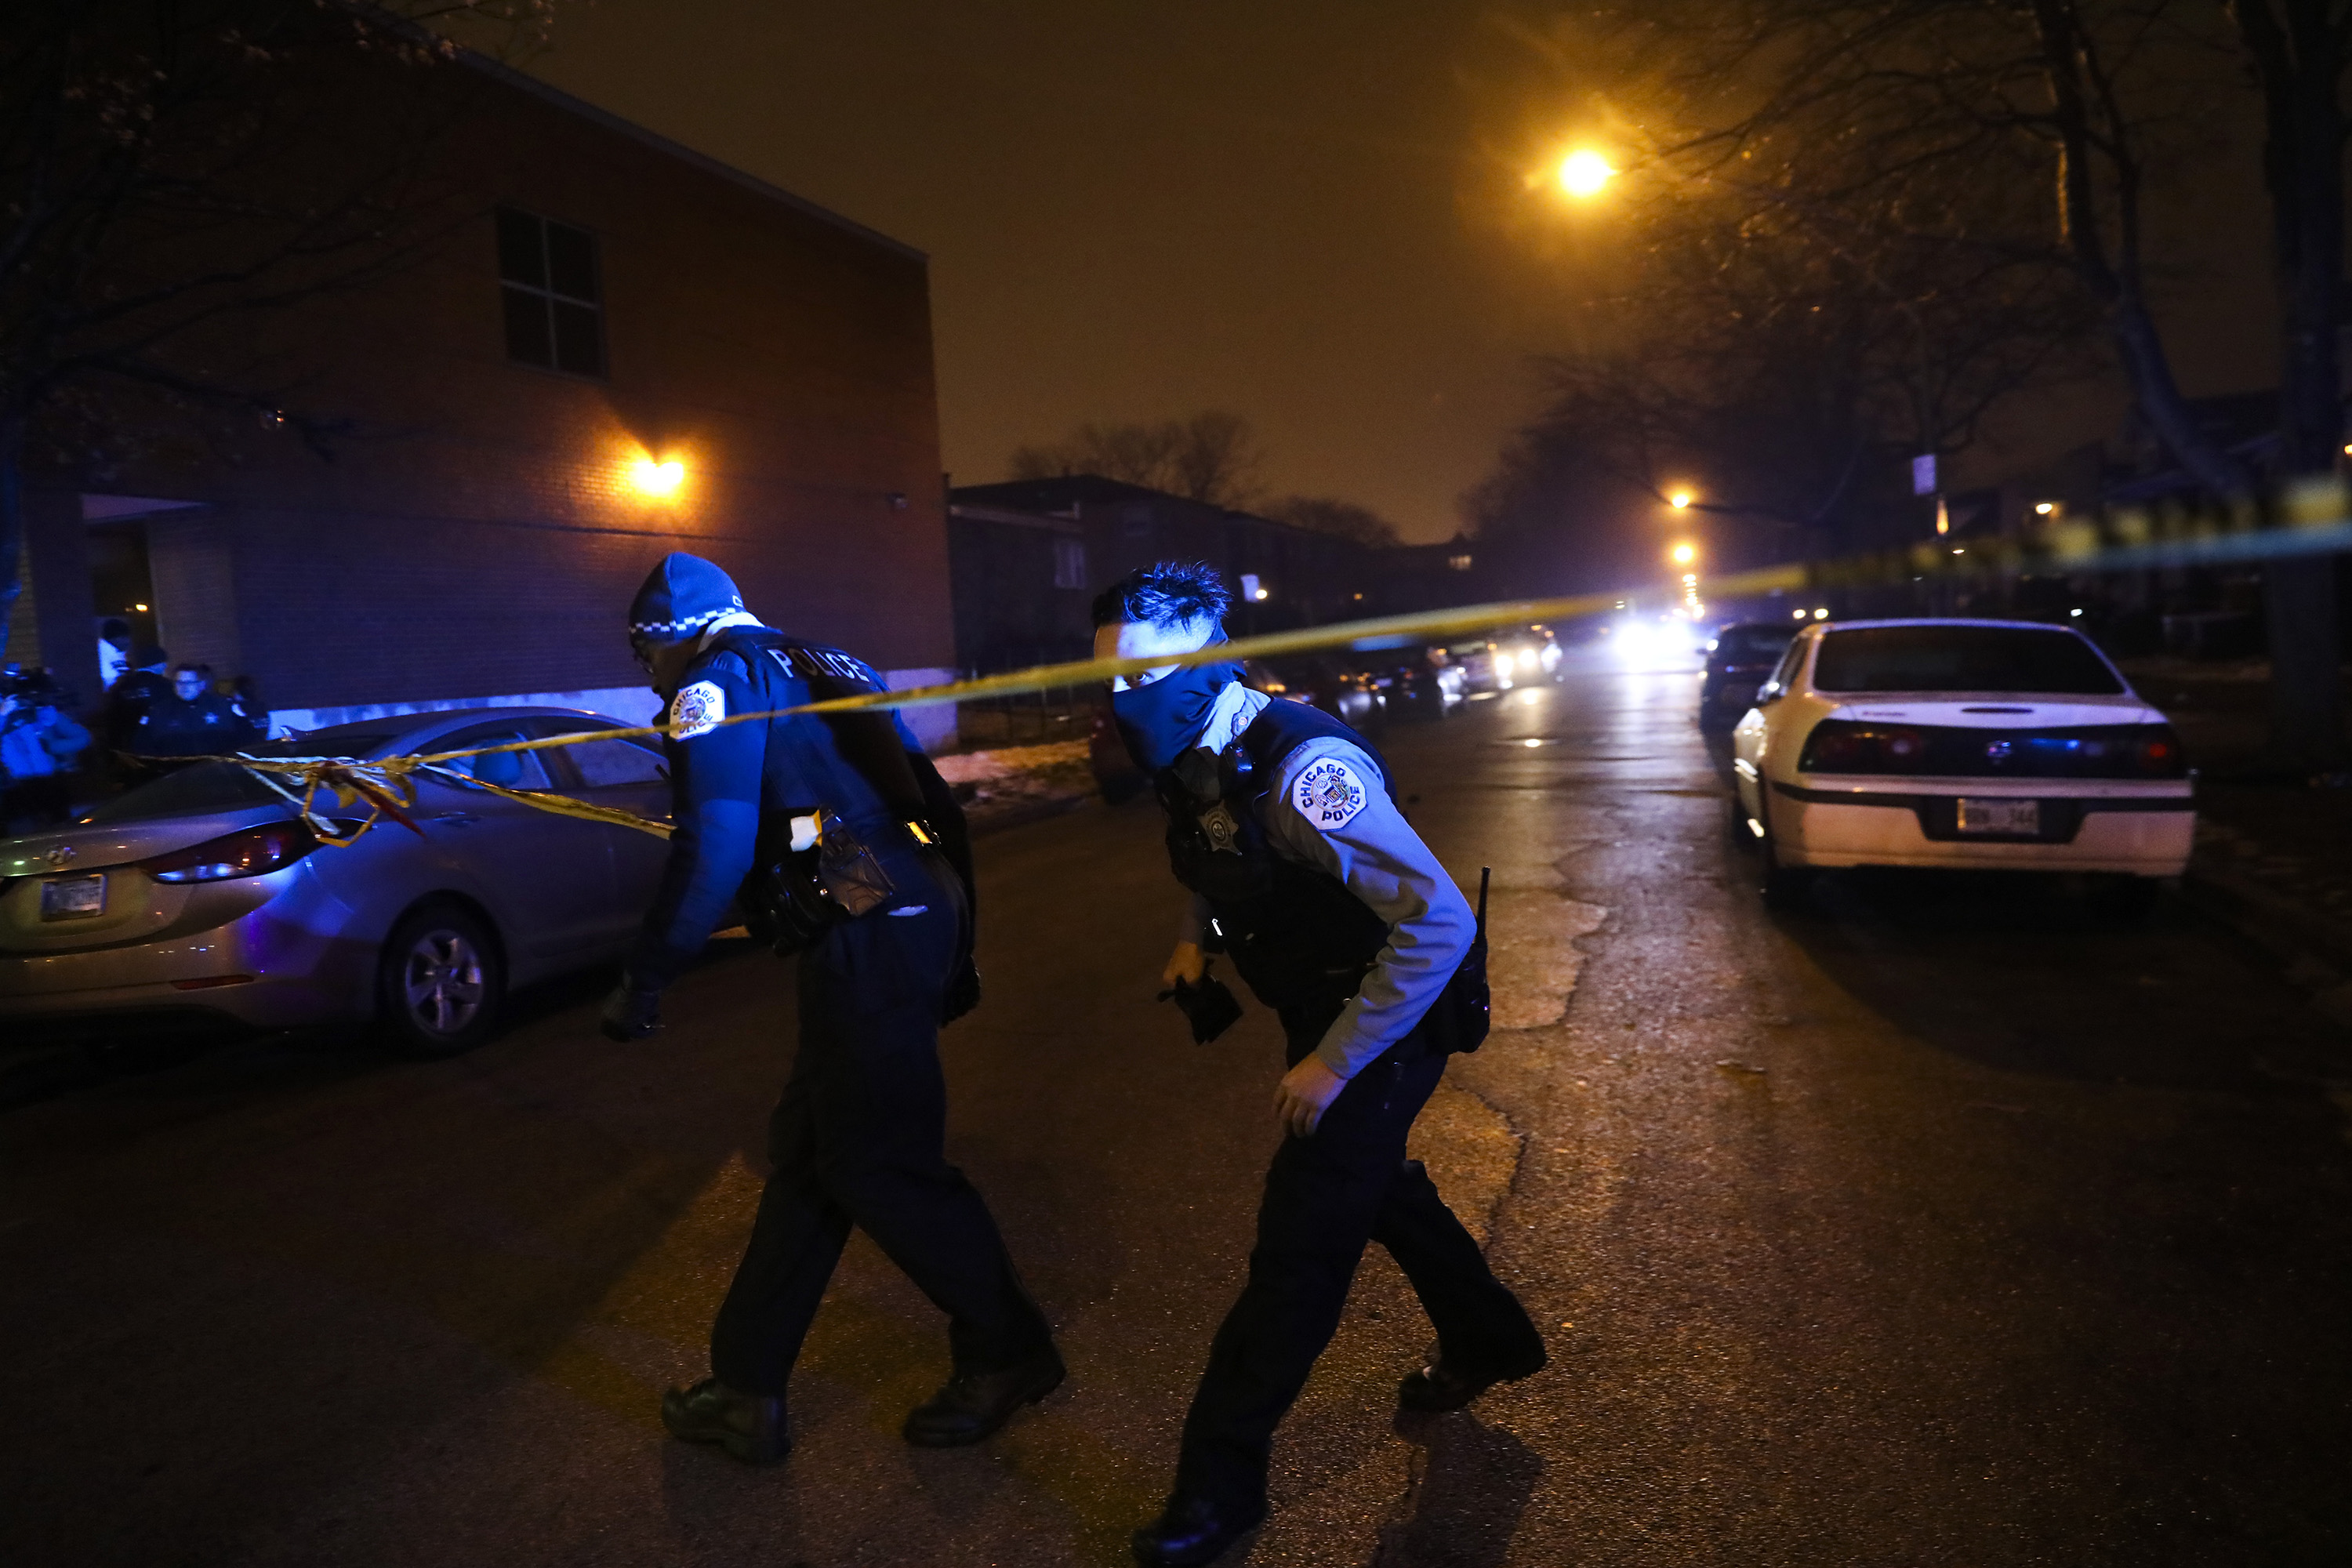 Members of the Chicago Police Department work the scene where at least six people were shot, one fatally, on the 8600 block of South Maryland Avenue on Sunday, Dec. 25, 2016 in Chicago.